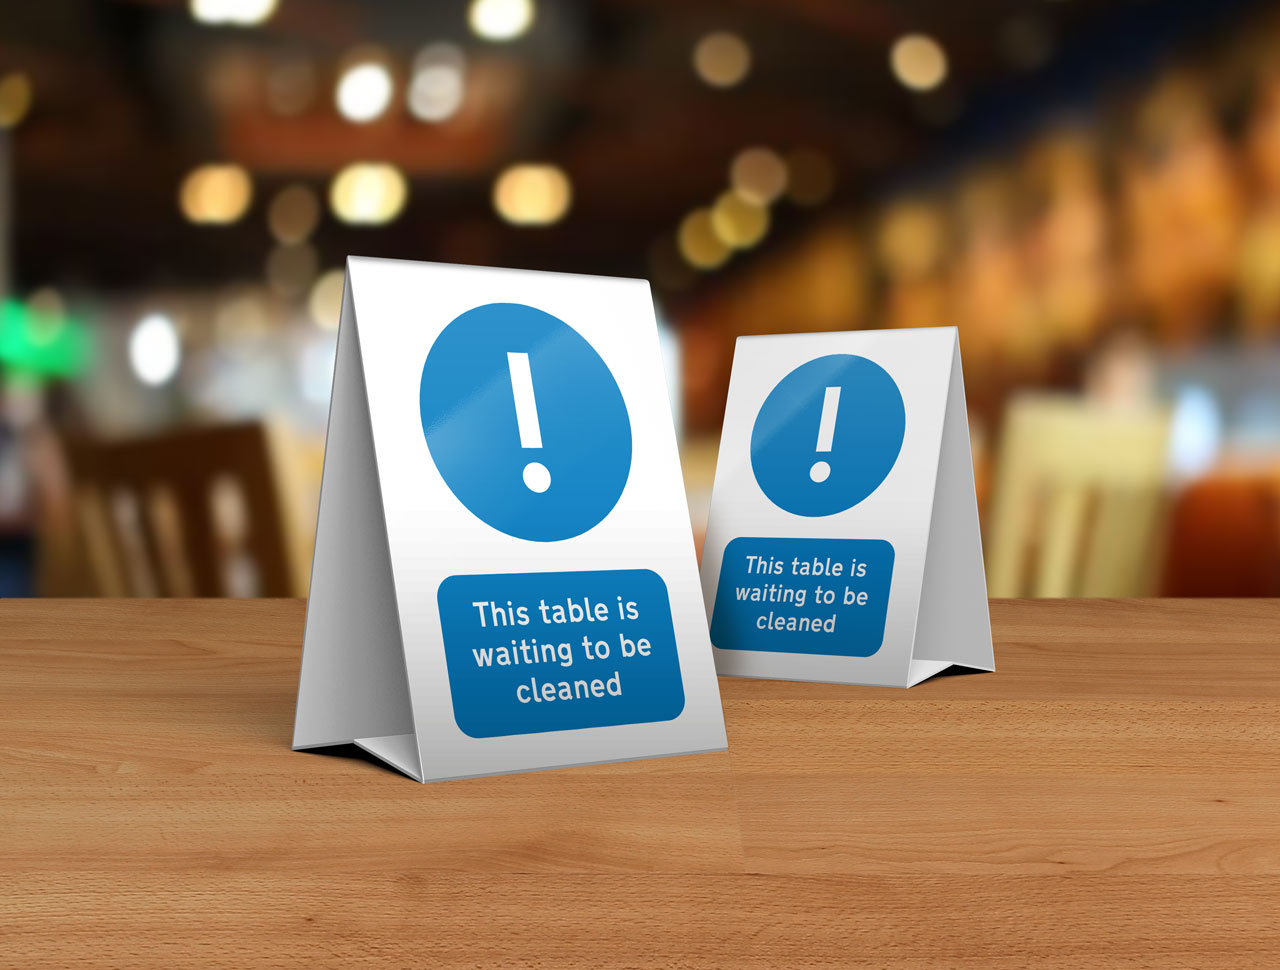 Please Clean This Table Tent Card for Restaurants, Cafes and Pubs